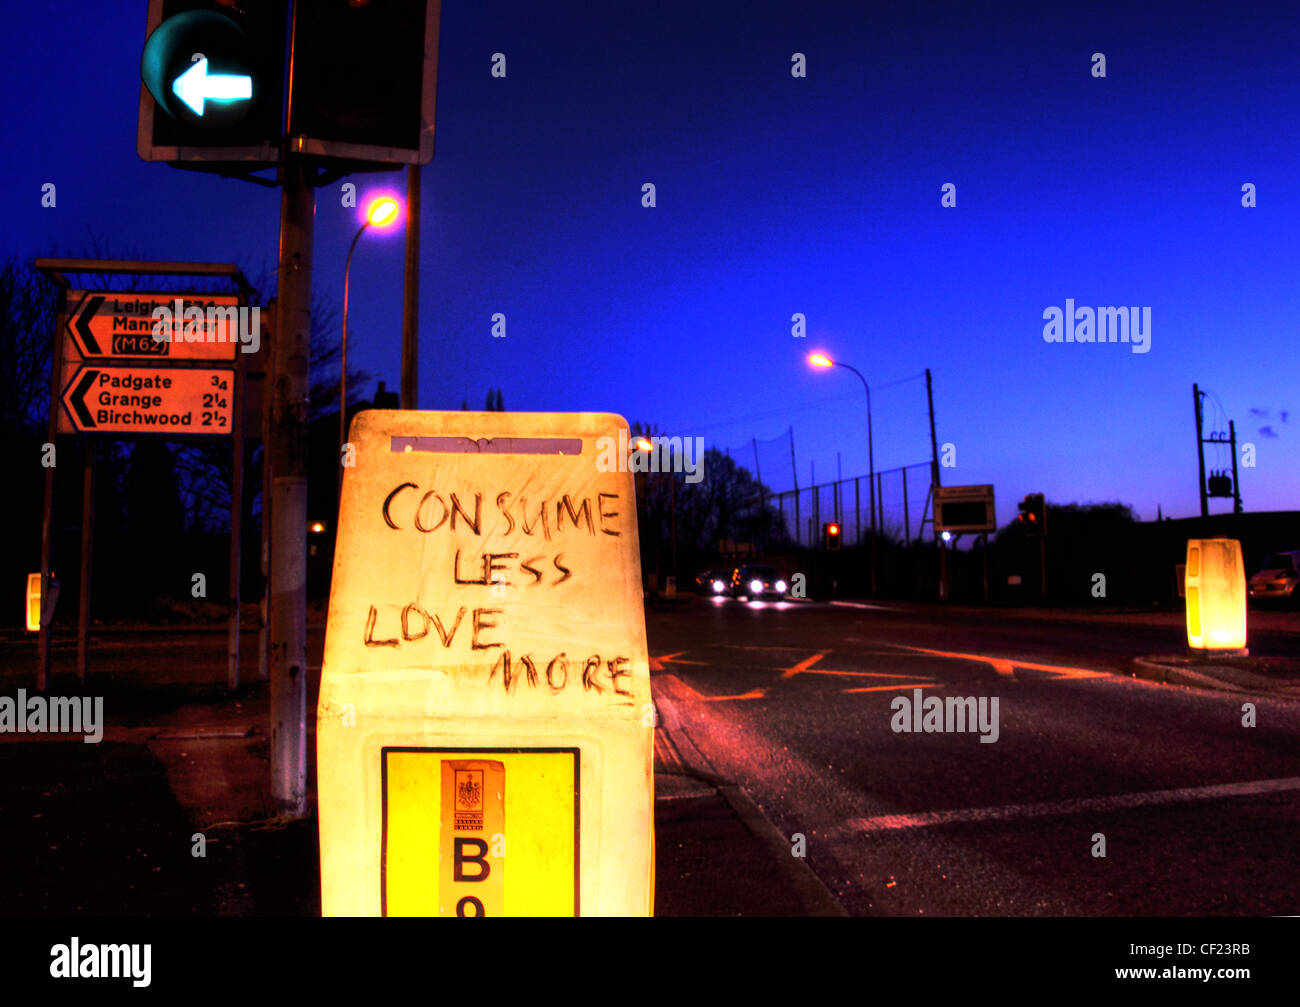 Comsume Less Love More scrawled on a road beacon,Padgate,/,Birchwood,A57,Warrington,at,Dusk,gotonysmith,Grange,Woolston,WBC,Warrington,Borough,Council,Unitary,Authority,LA,Local,dusk,blue,hour,night,nighttime,time,roadway,gotonysmith,Buy Pictures of,Buy Images Of,drive,driving,road,Maybe,a,mantra,for,our,current,troubled,times?,Perhaps,we,should,worry,about,our,carbon,footprint,walk,a,bit,more,rather,than,drive,as,much?,Possibly,eat,less,supermarket,food,consume,in,season,and,cut,down,on,our,food,air,miles,?,Think,more,about,our,neighbours,come to think of it,do,you,even,know,your,neighbours?,Some,of,our,prejudges,should,maybe,be,put,aside,the,world's,more,interesting,when,it's,diverse.,I,must,have,passed,this,on,Orford,road,coming,into,Padgate,Warrington,Cheshire,a,few,dozen,times.,To,stop,at,the,traffic,lights,makes,you,consider,these,four,words,a,little,more,deeply.,Next,time,you,wait,there,to,follow,the,A50,or,to,go,to,Birchwood,following,the,A574,consider these words.